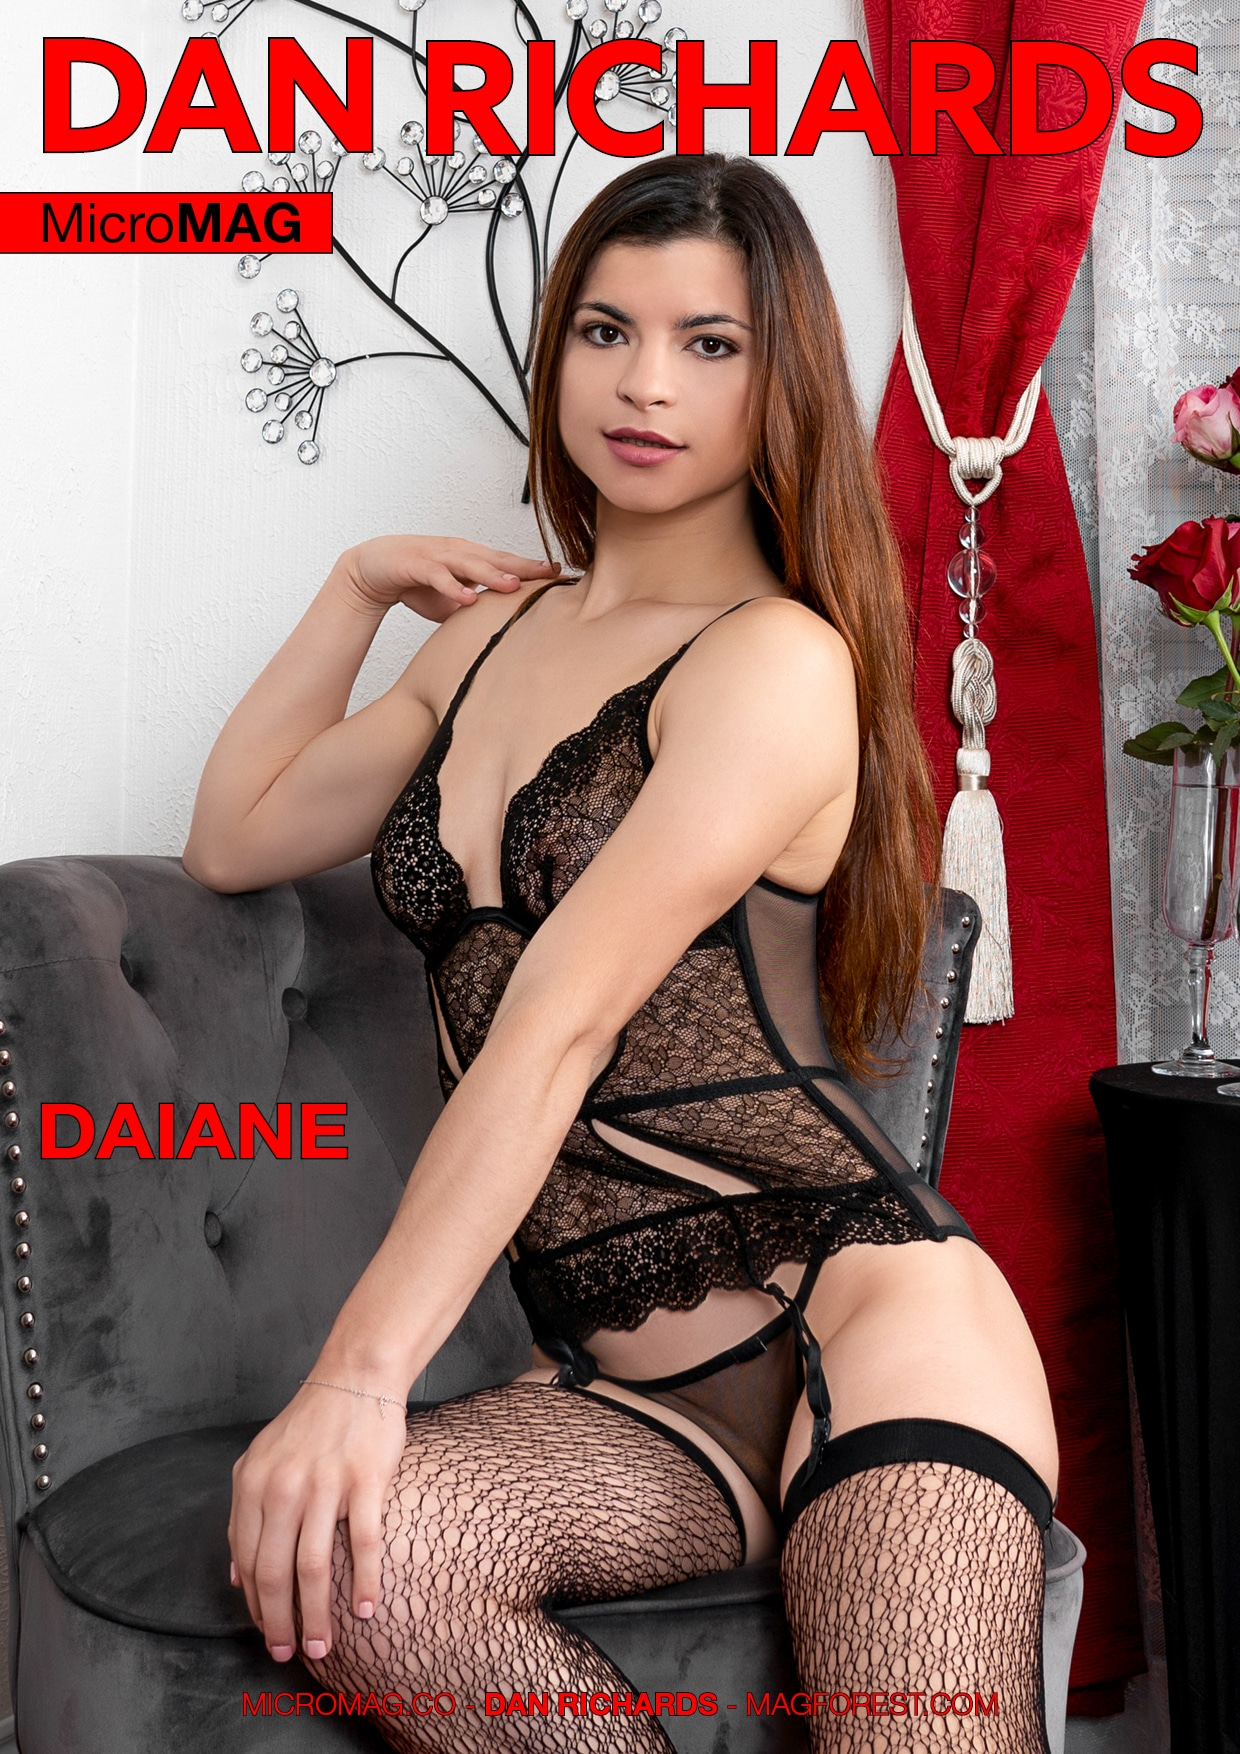 Dan Richards MicroMAG - Daiane - Issue 2 2